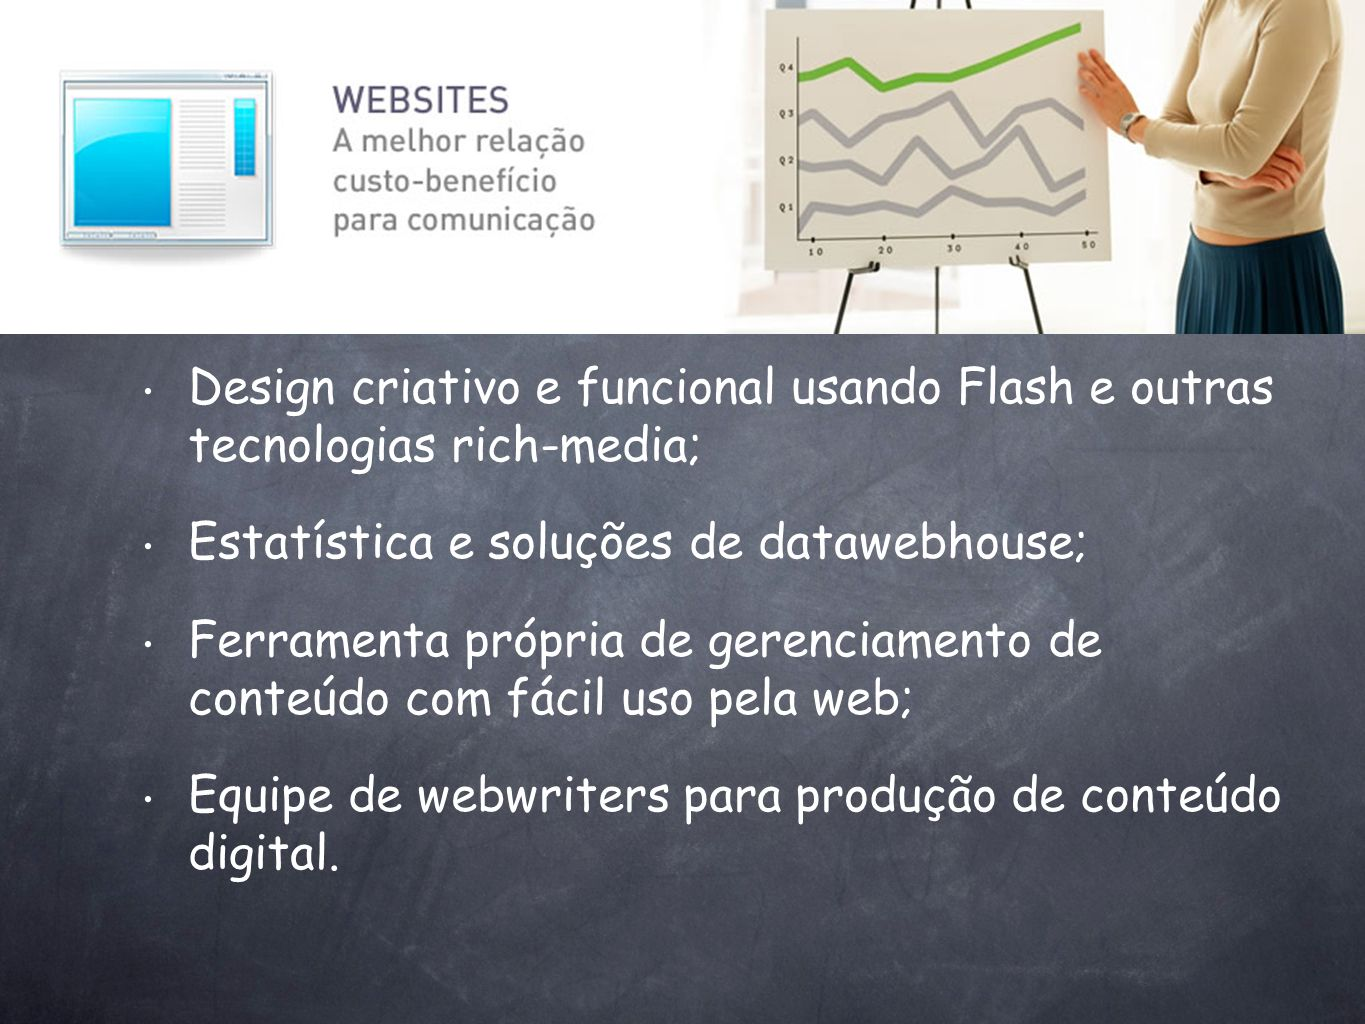 Design criativo e funcional usando Flash e outras tecnologias rich-media;